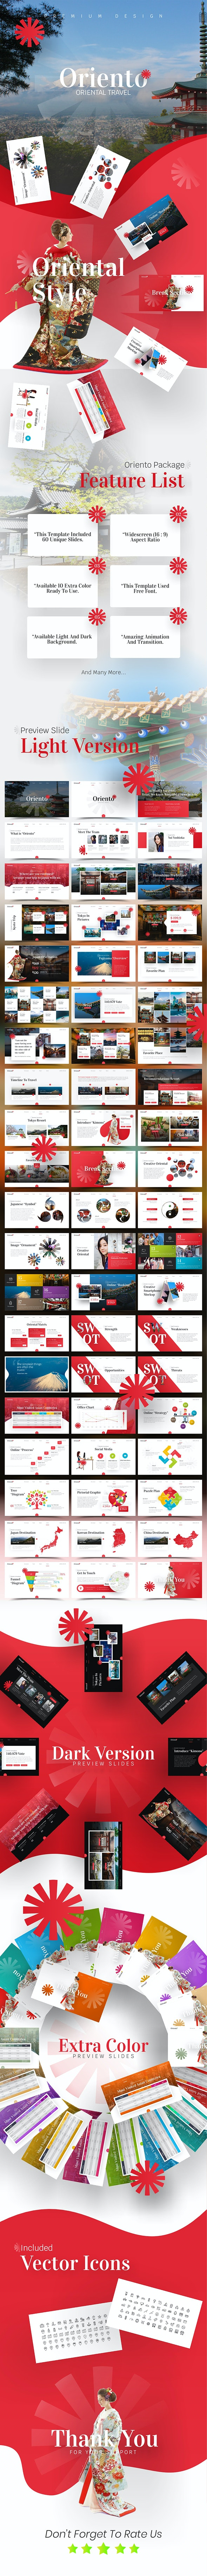 Oriento Tourism PowerPoint Template - PowerPoint Templates Presentation Templates